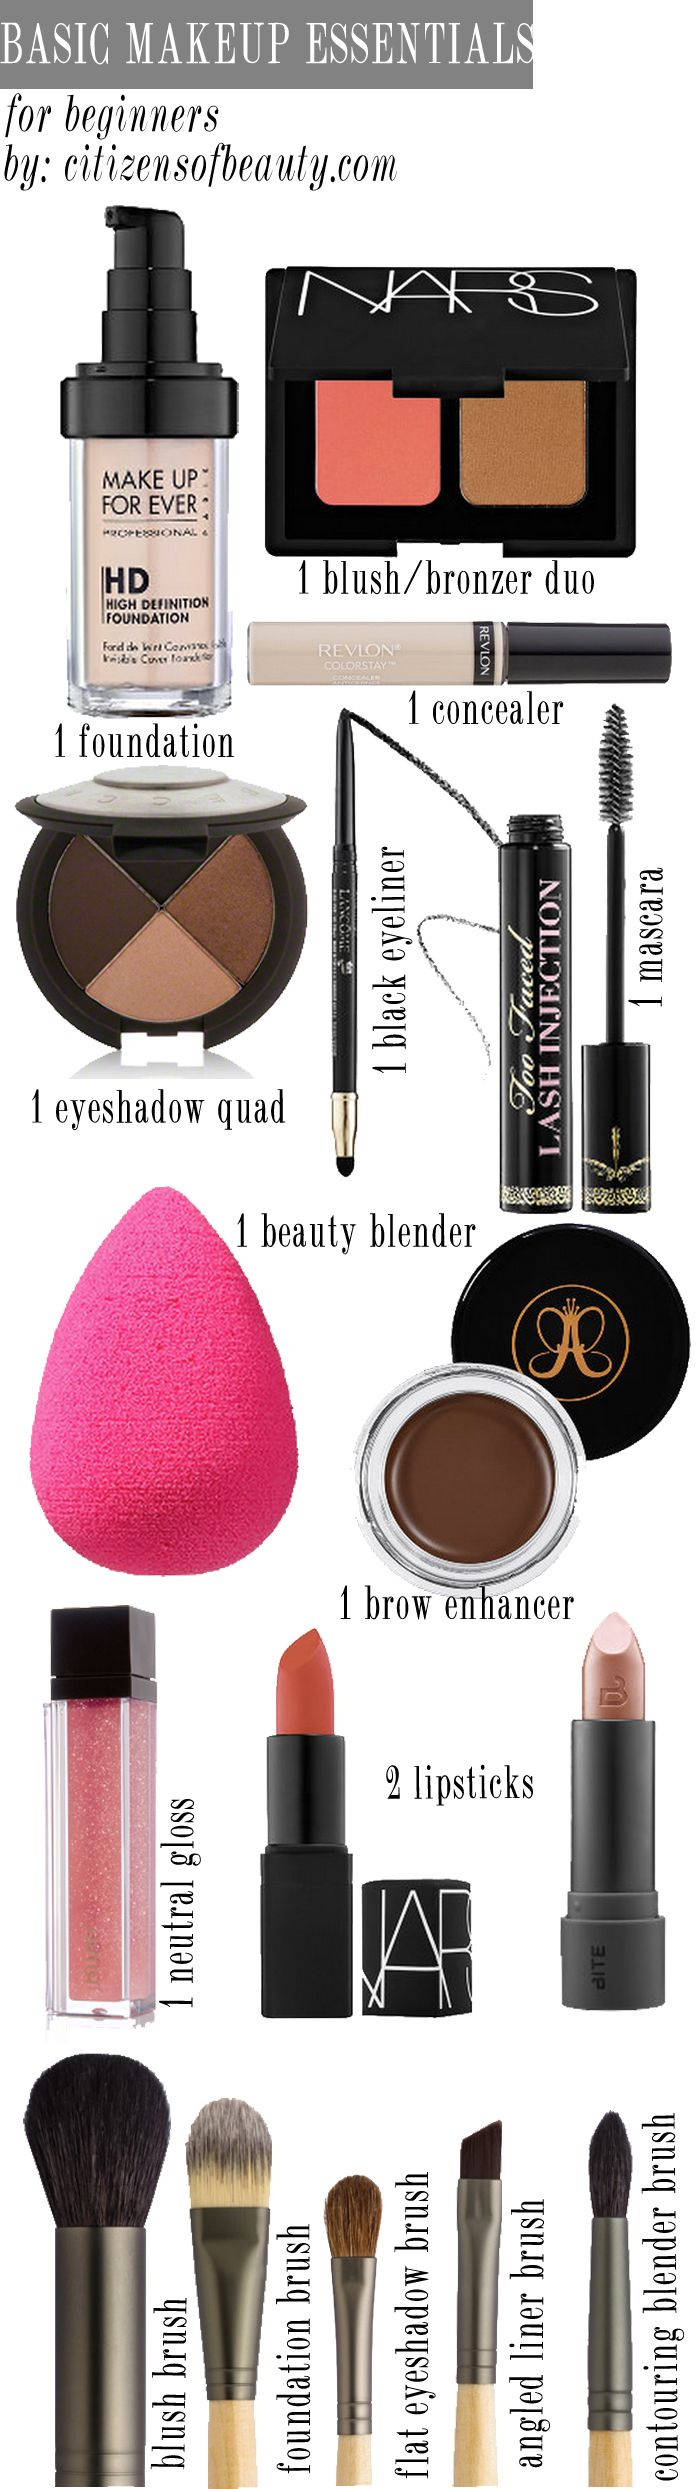 Basic Makeup Essentials for Beginners Basic makeup